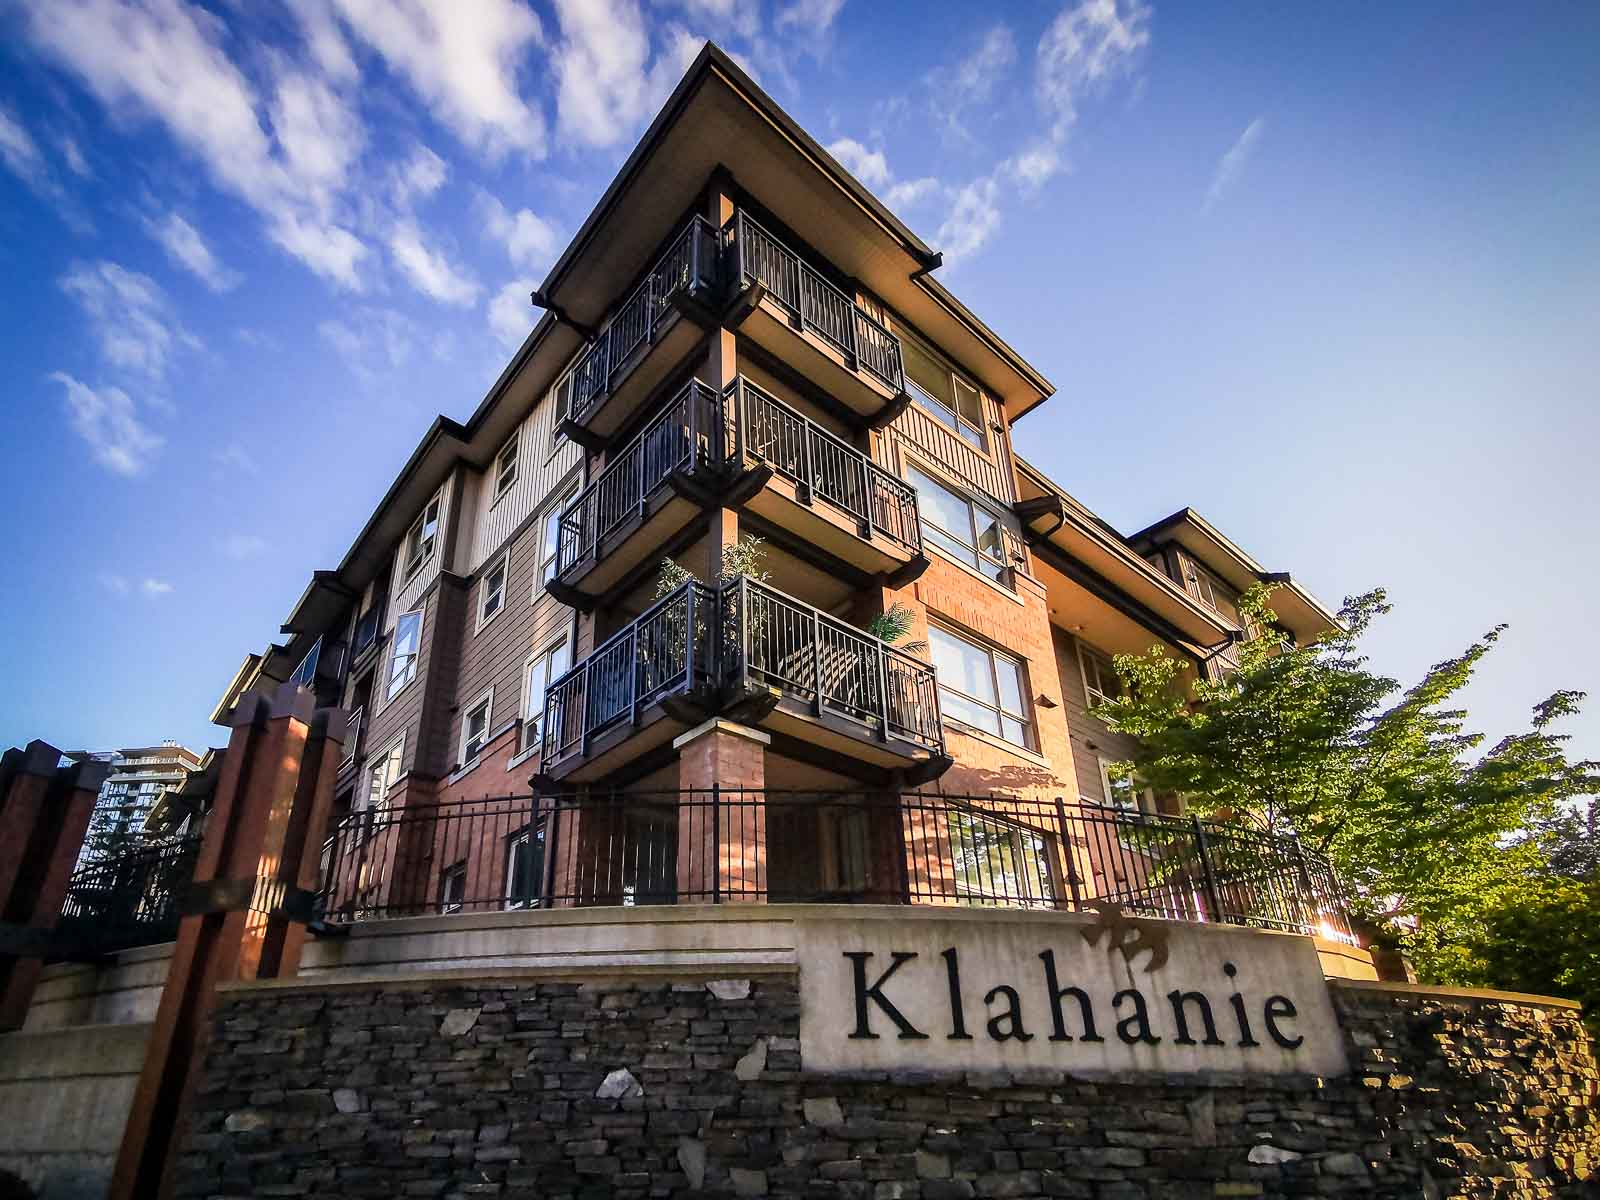 204-700 Klahanie Drive, Port Moody, British Columbia